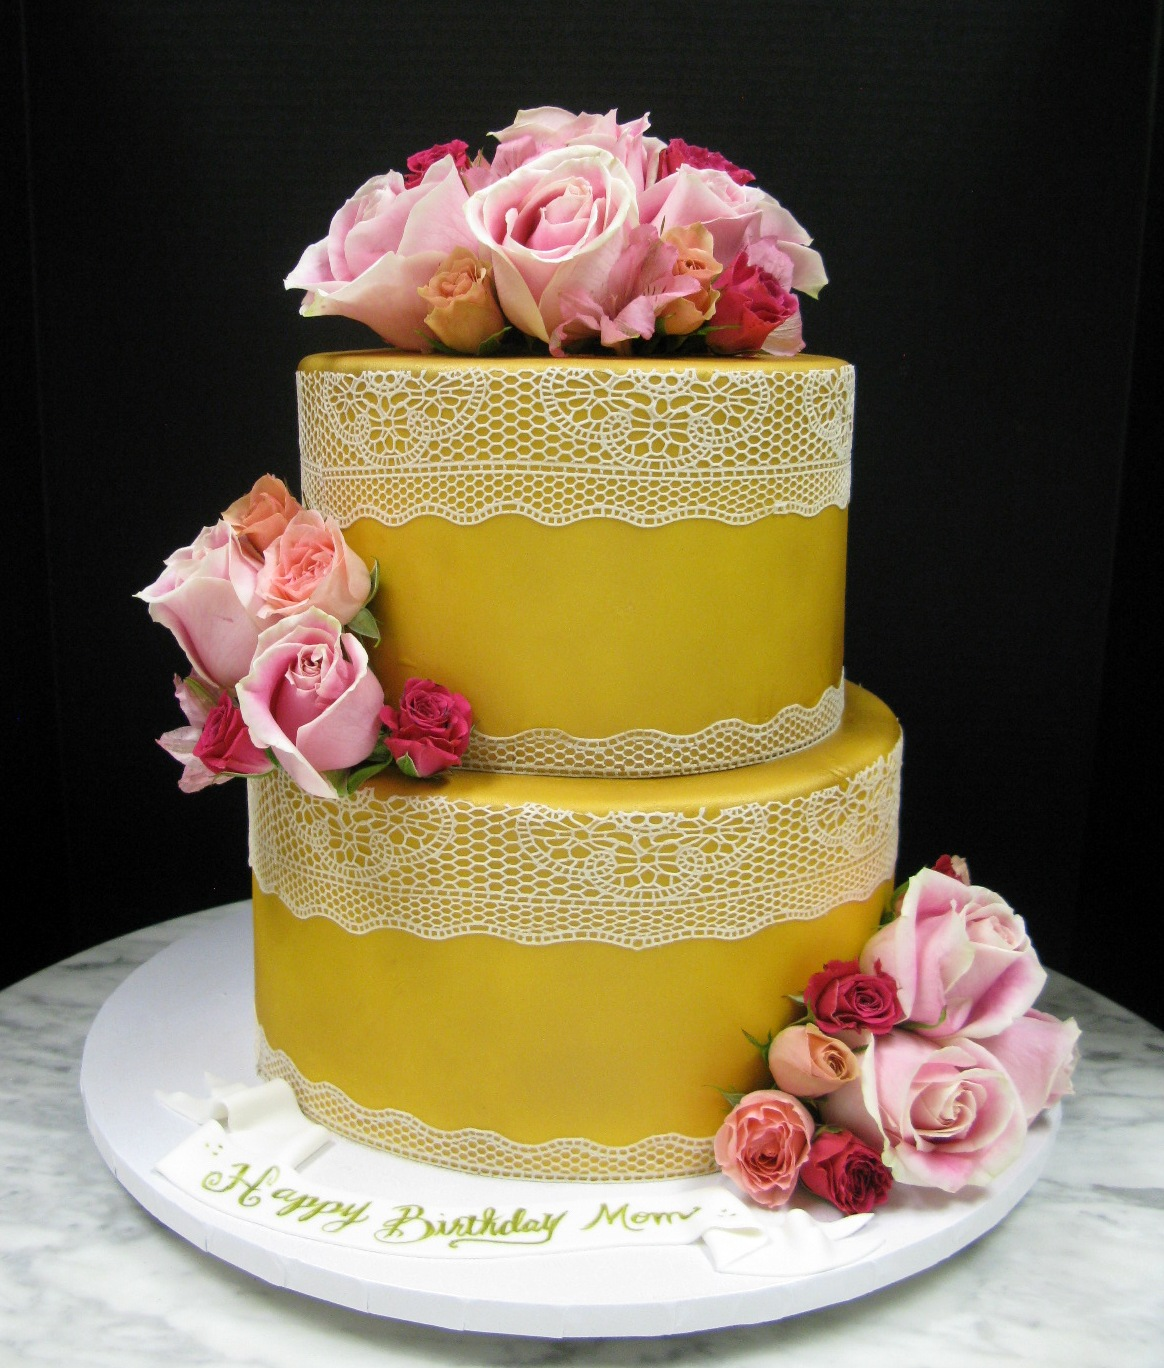 Golden Cake with White Lace